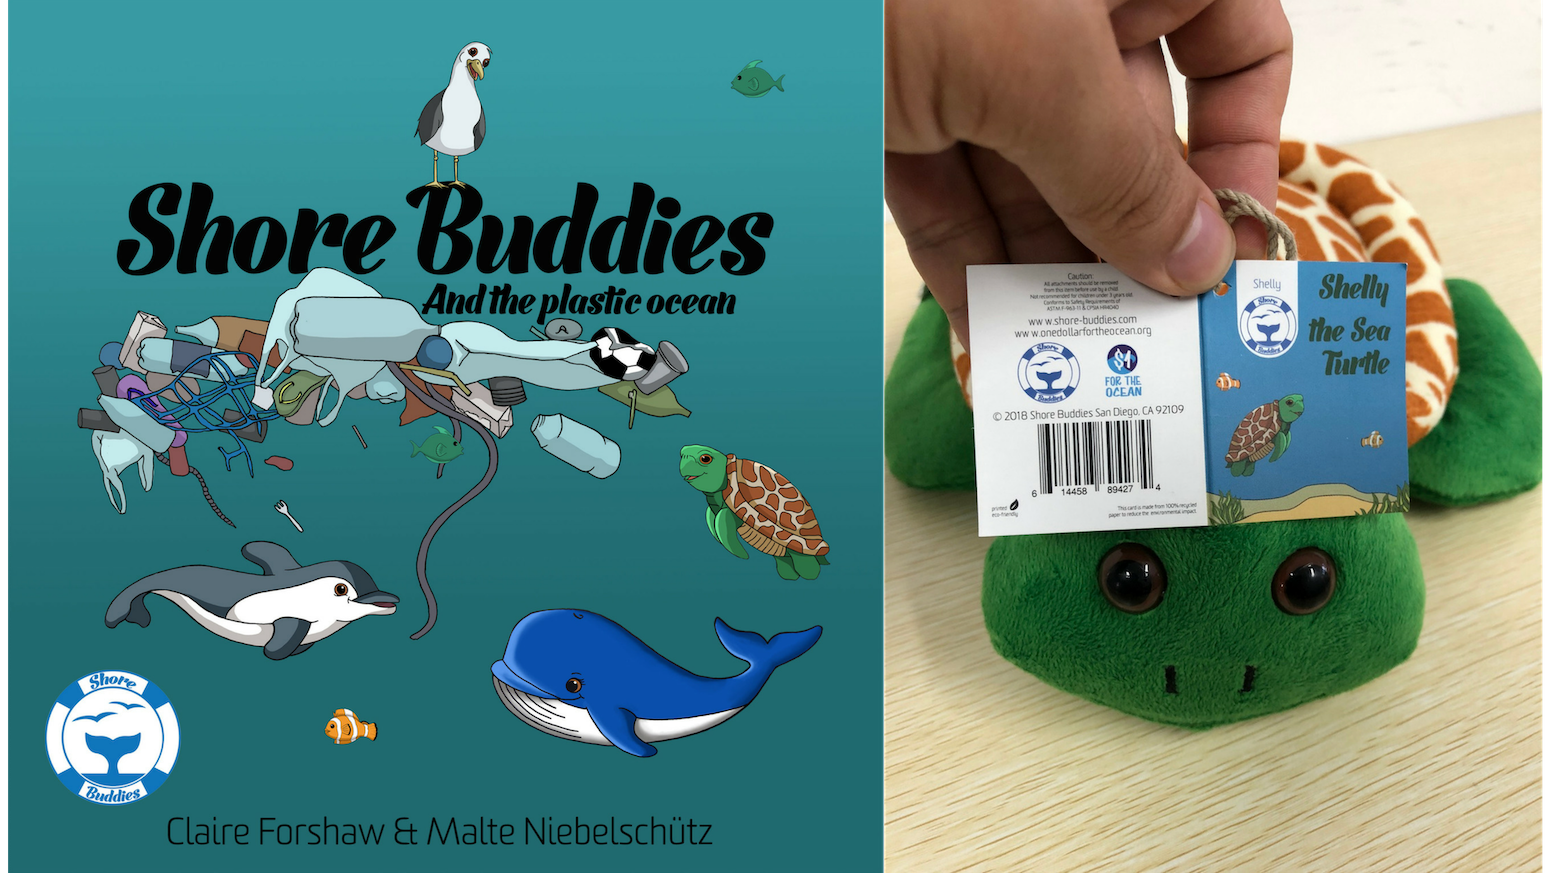 Thank you for everyone's support to help keep plastics out of Our Oceans. We are currently collecting backers information and will ship out rewards soon. All Shore Buddies as well as the book are now available on our website as well.